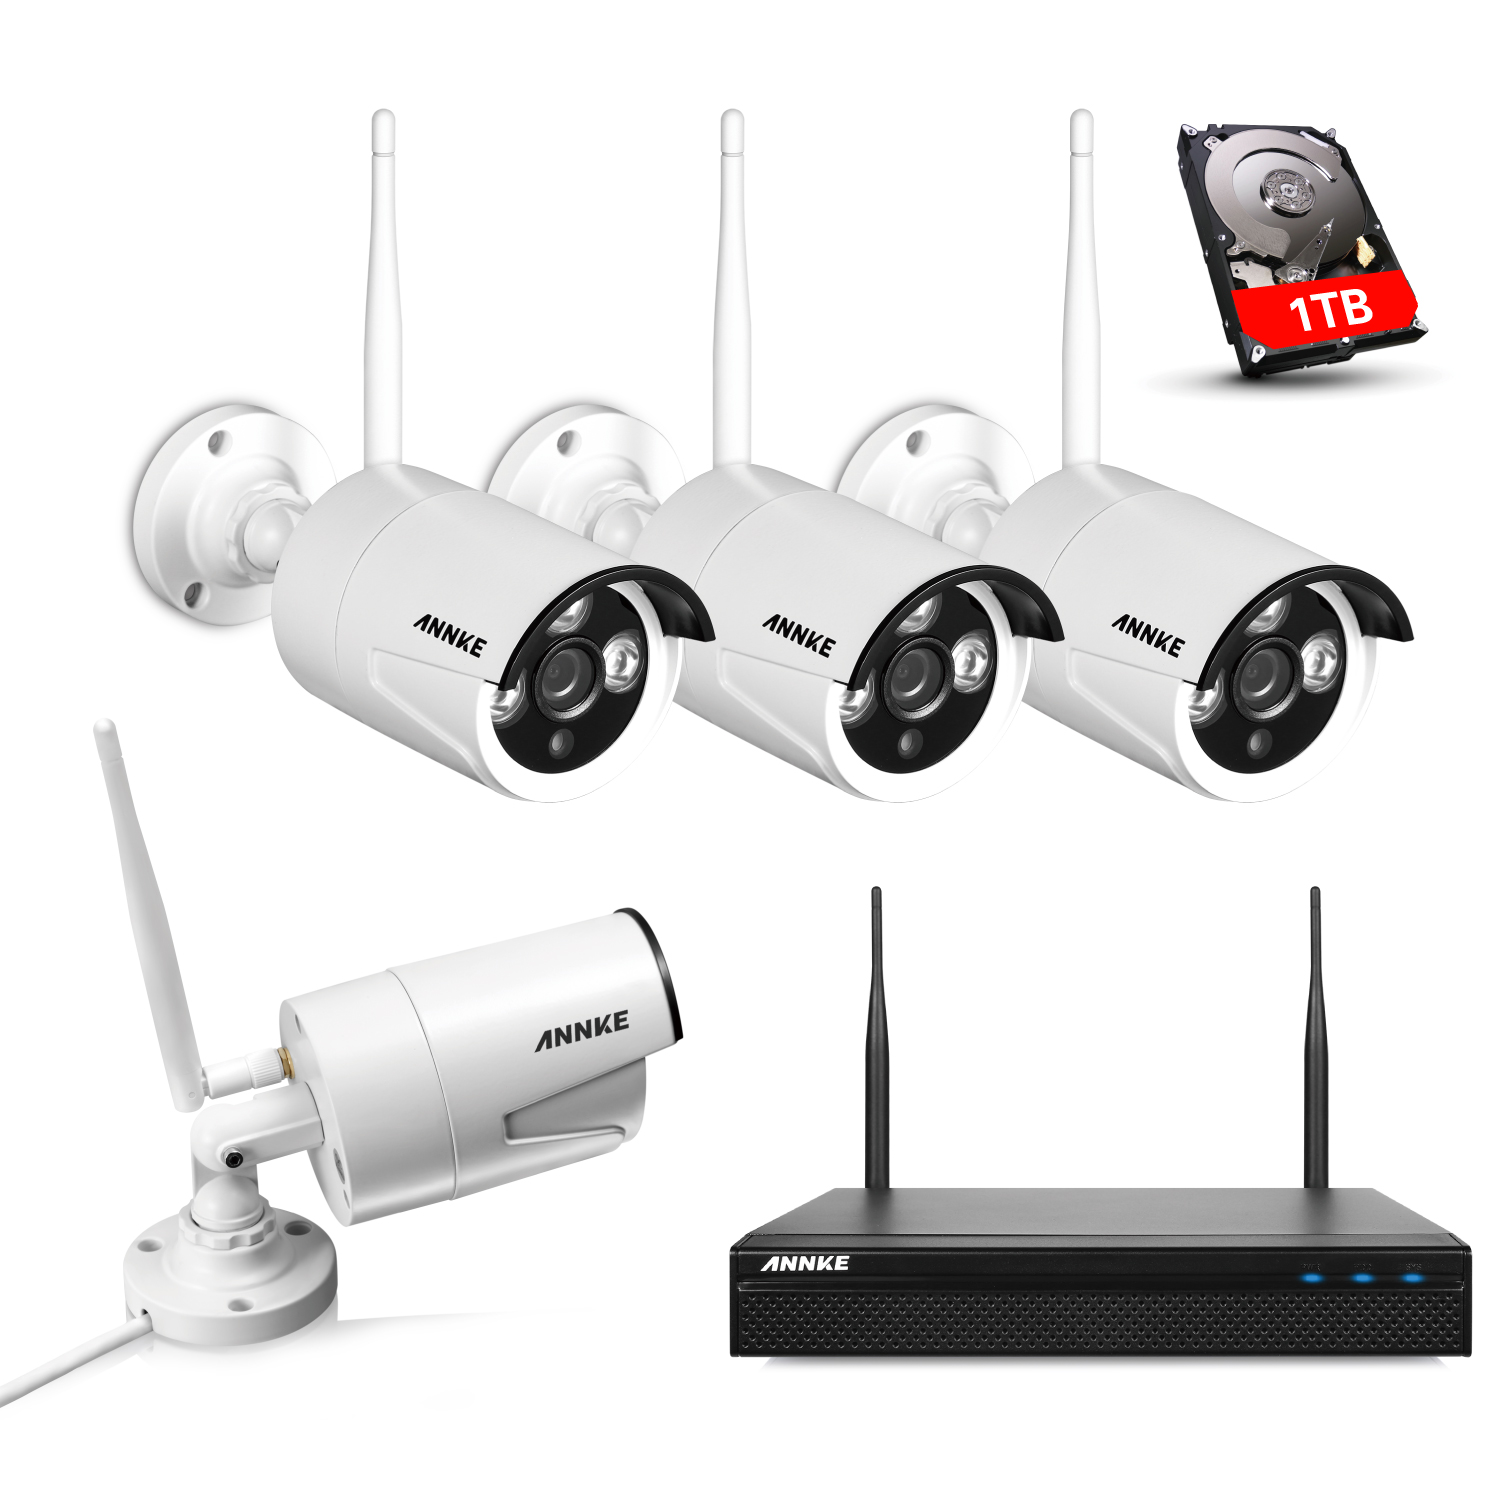 ANNKE 960P HD Wireless Network NVR Security Camera System...